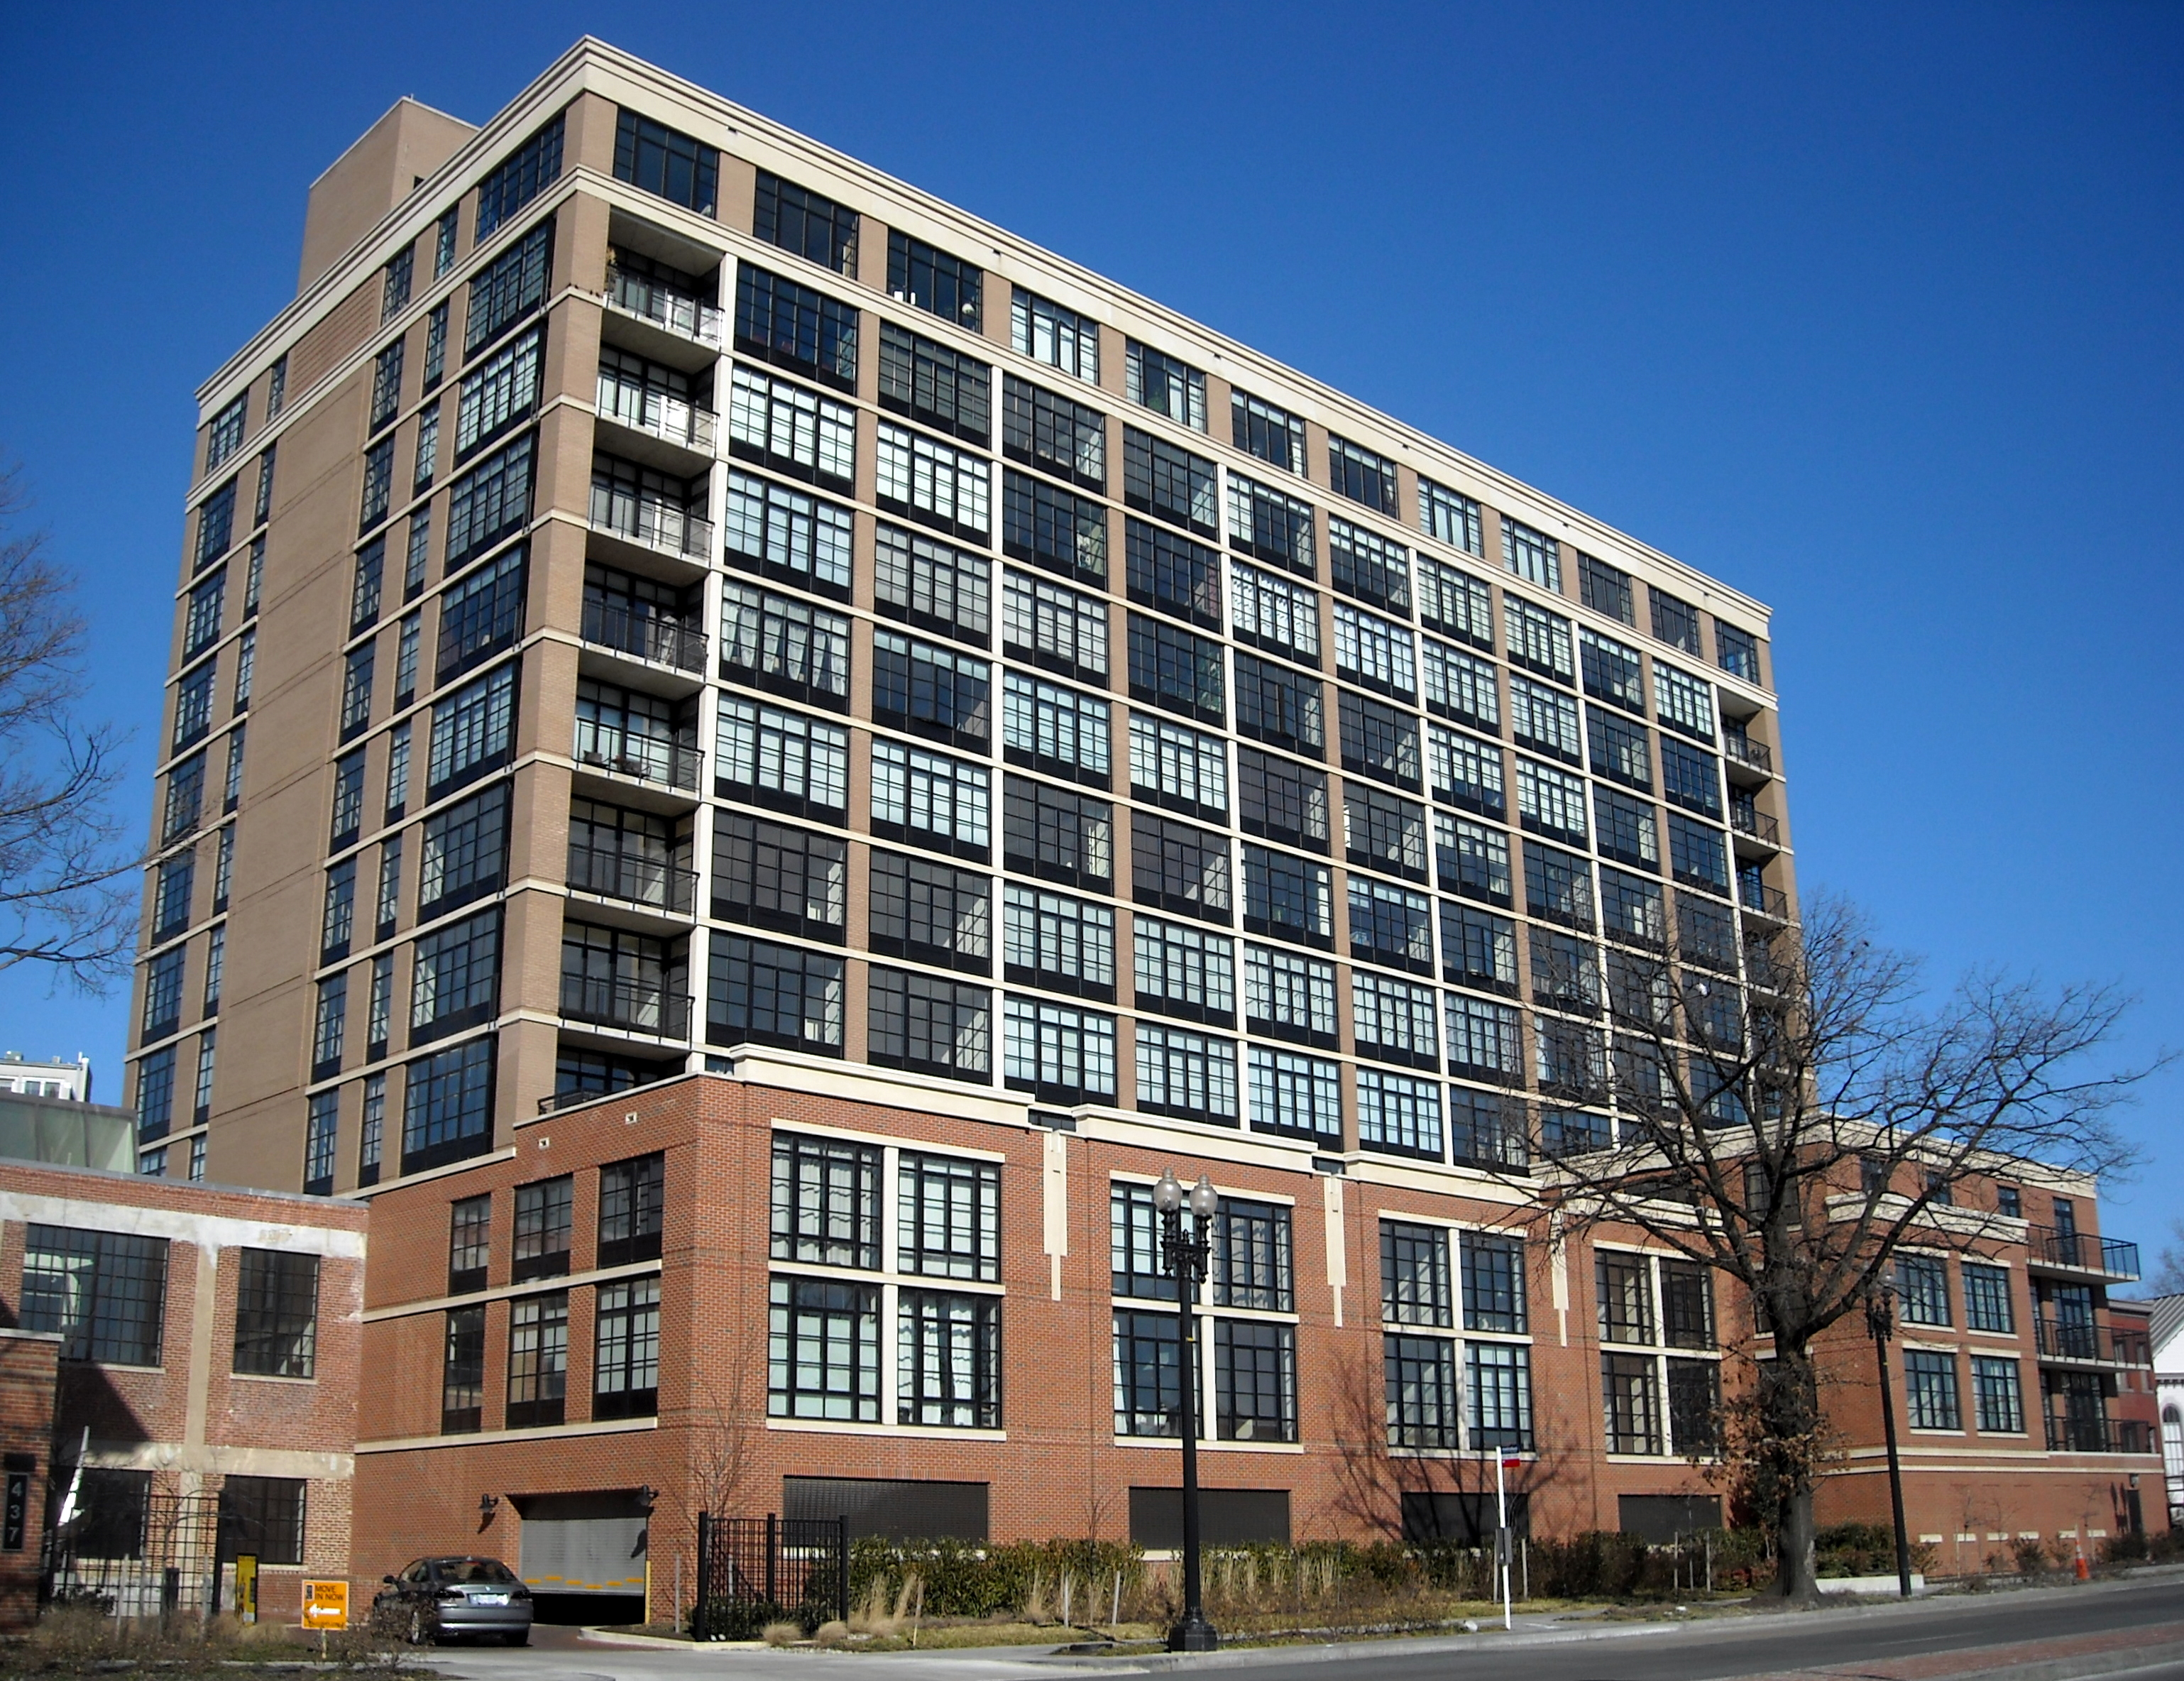 http://upload.wikimedia.org/wikipedia/commons/b/bd/Yale_Steam_Laundry_Condominium.jpg